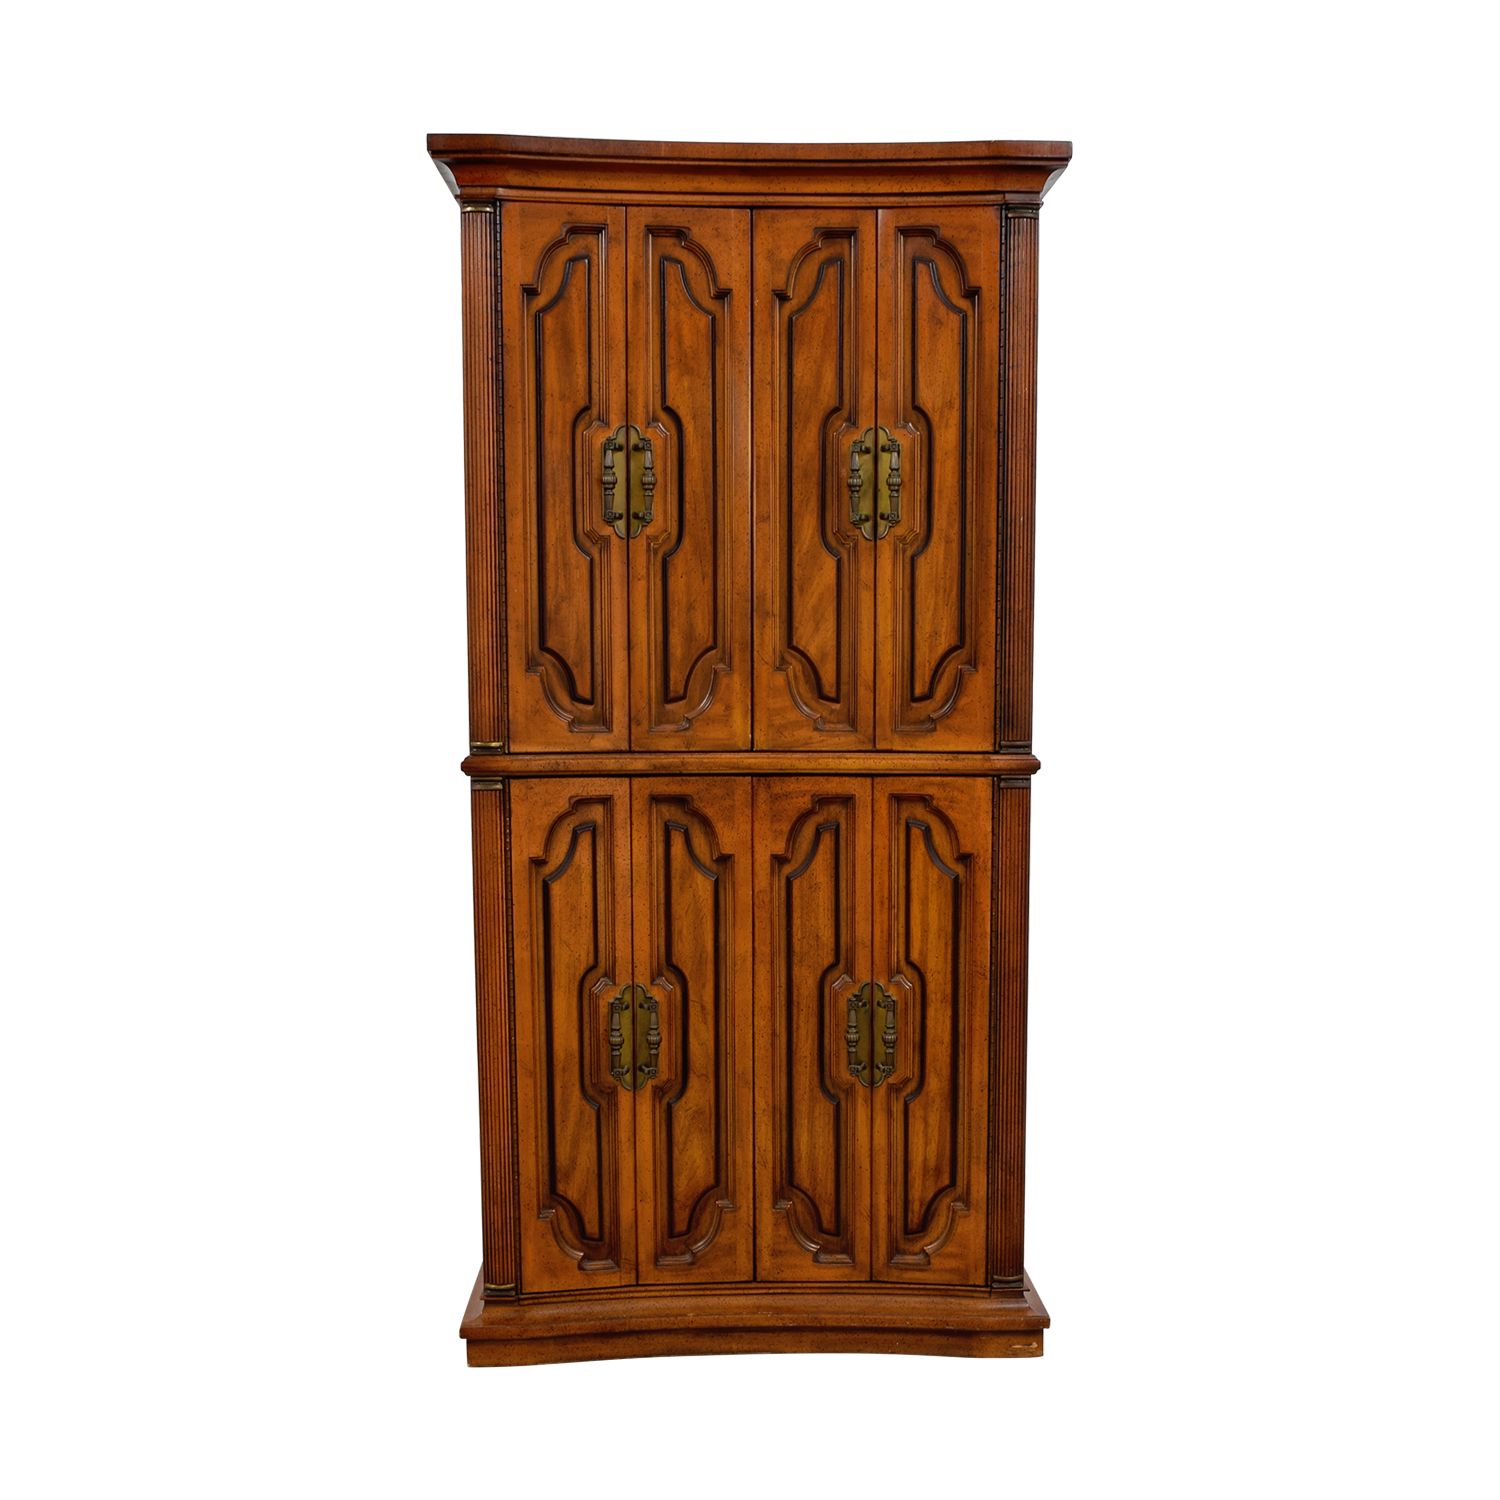 wardrobes armoires used wardrobes armoires for sale. Black Bedroom Furniture Sets. Home Design Ideas